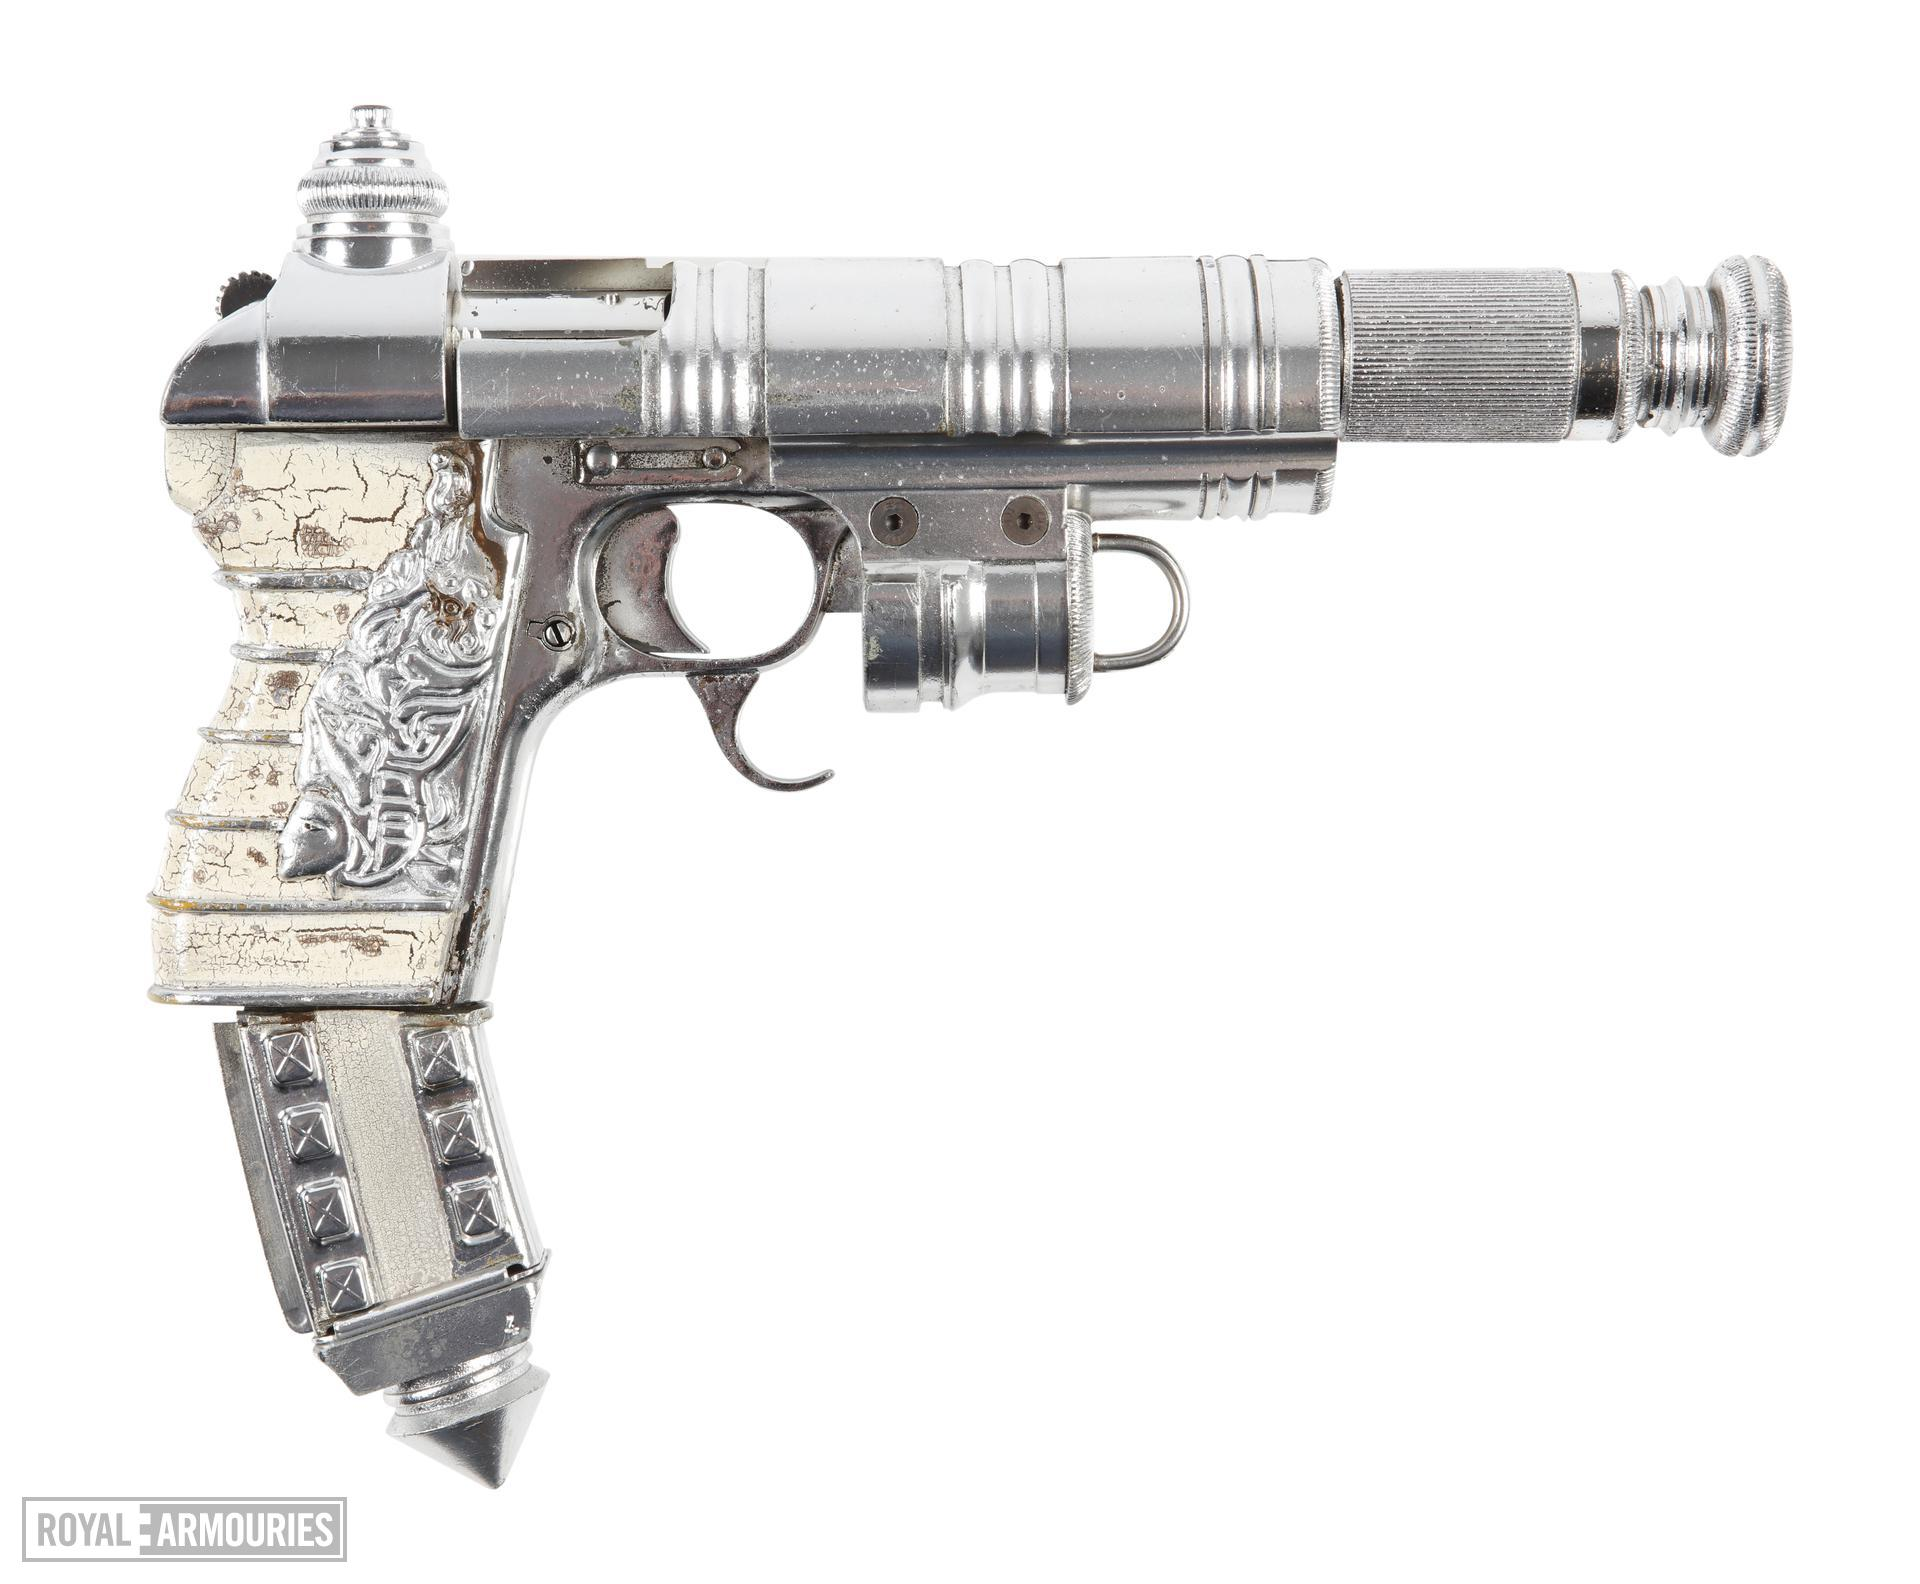 Prop pistol from the 2003 movie 'The League of Extraordinary Gentlemen'. Made from a Tokarev TT33 pistol dressed with painted plastic parts. Converted to fire movie blanks using an internal barrel restrictor. Used in the movie by Captain Nemo and some of his crew. Intended to suggest a Victorian weapon ahead of its time, following the 'Steampunk' retro-futuristic aesthetic of the movie and the graphic novel that it was based upon. European, about 1940 (XII.11938)